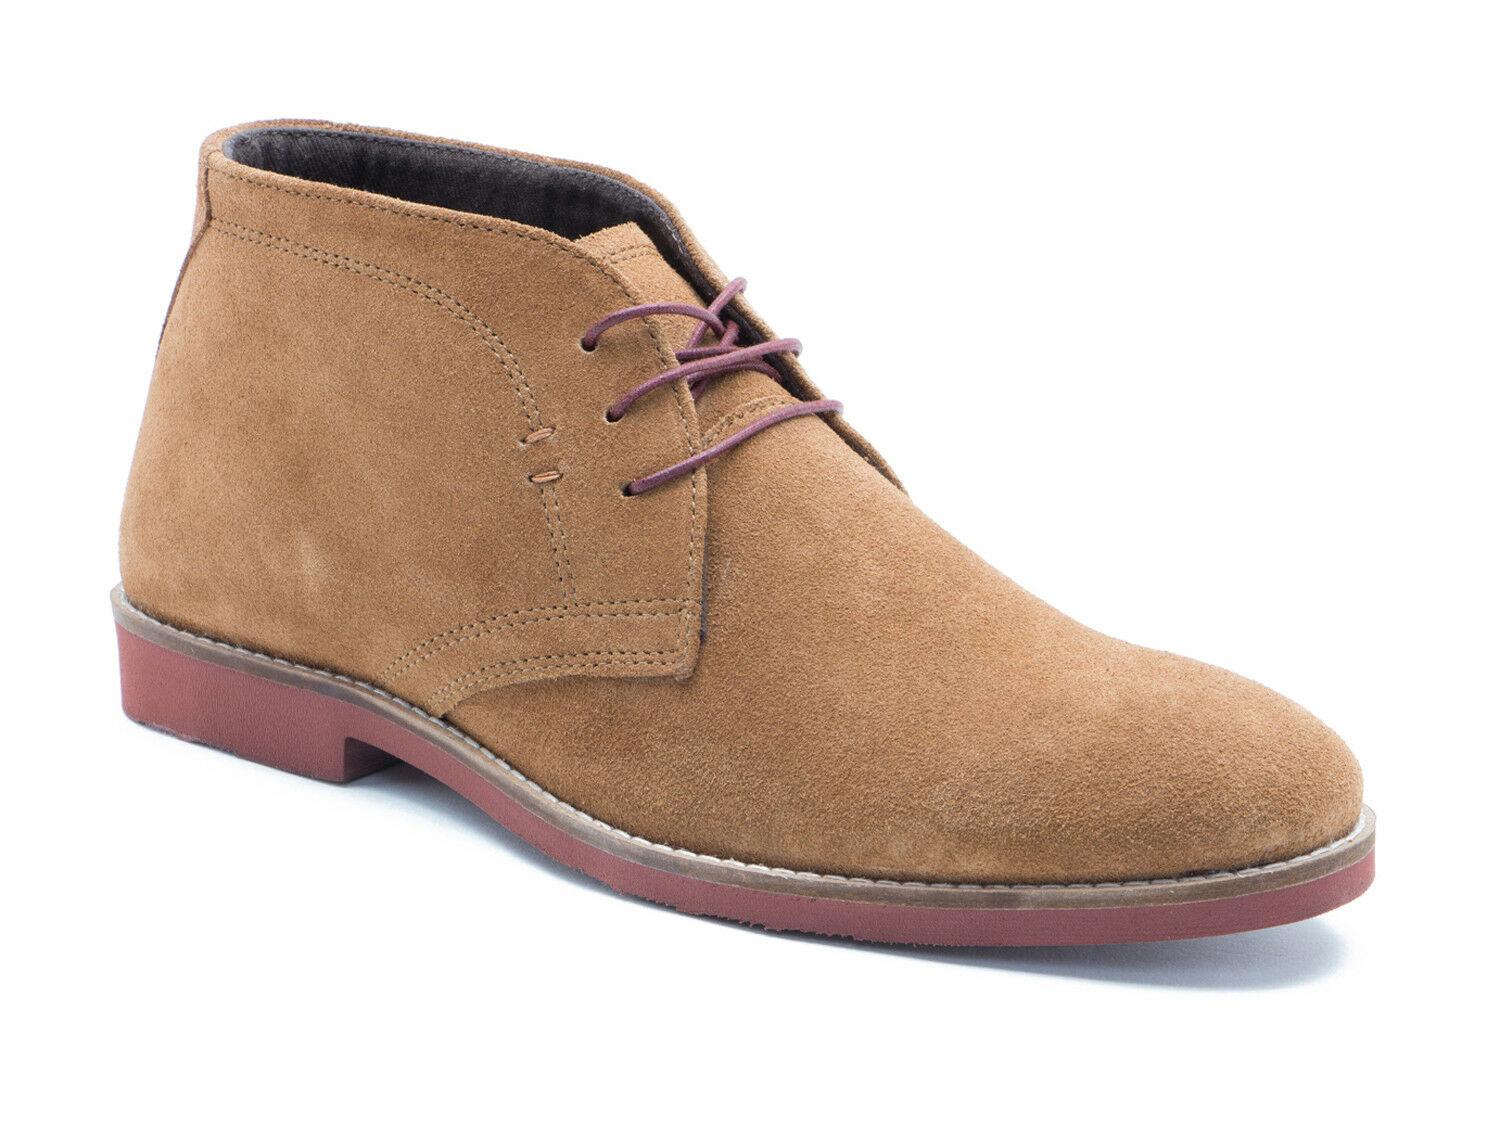 Red Tape Dorney Tan Suede Mens Casual Desert Boots Free UK P&P